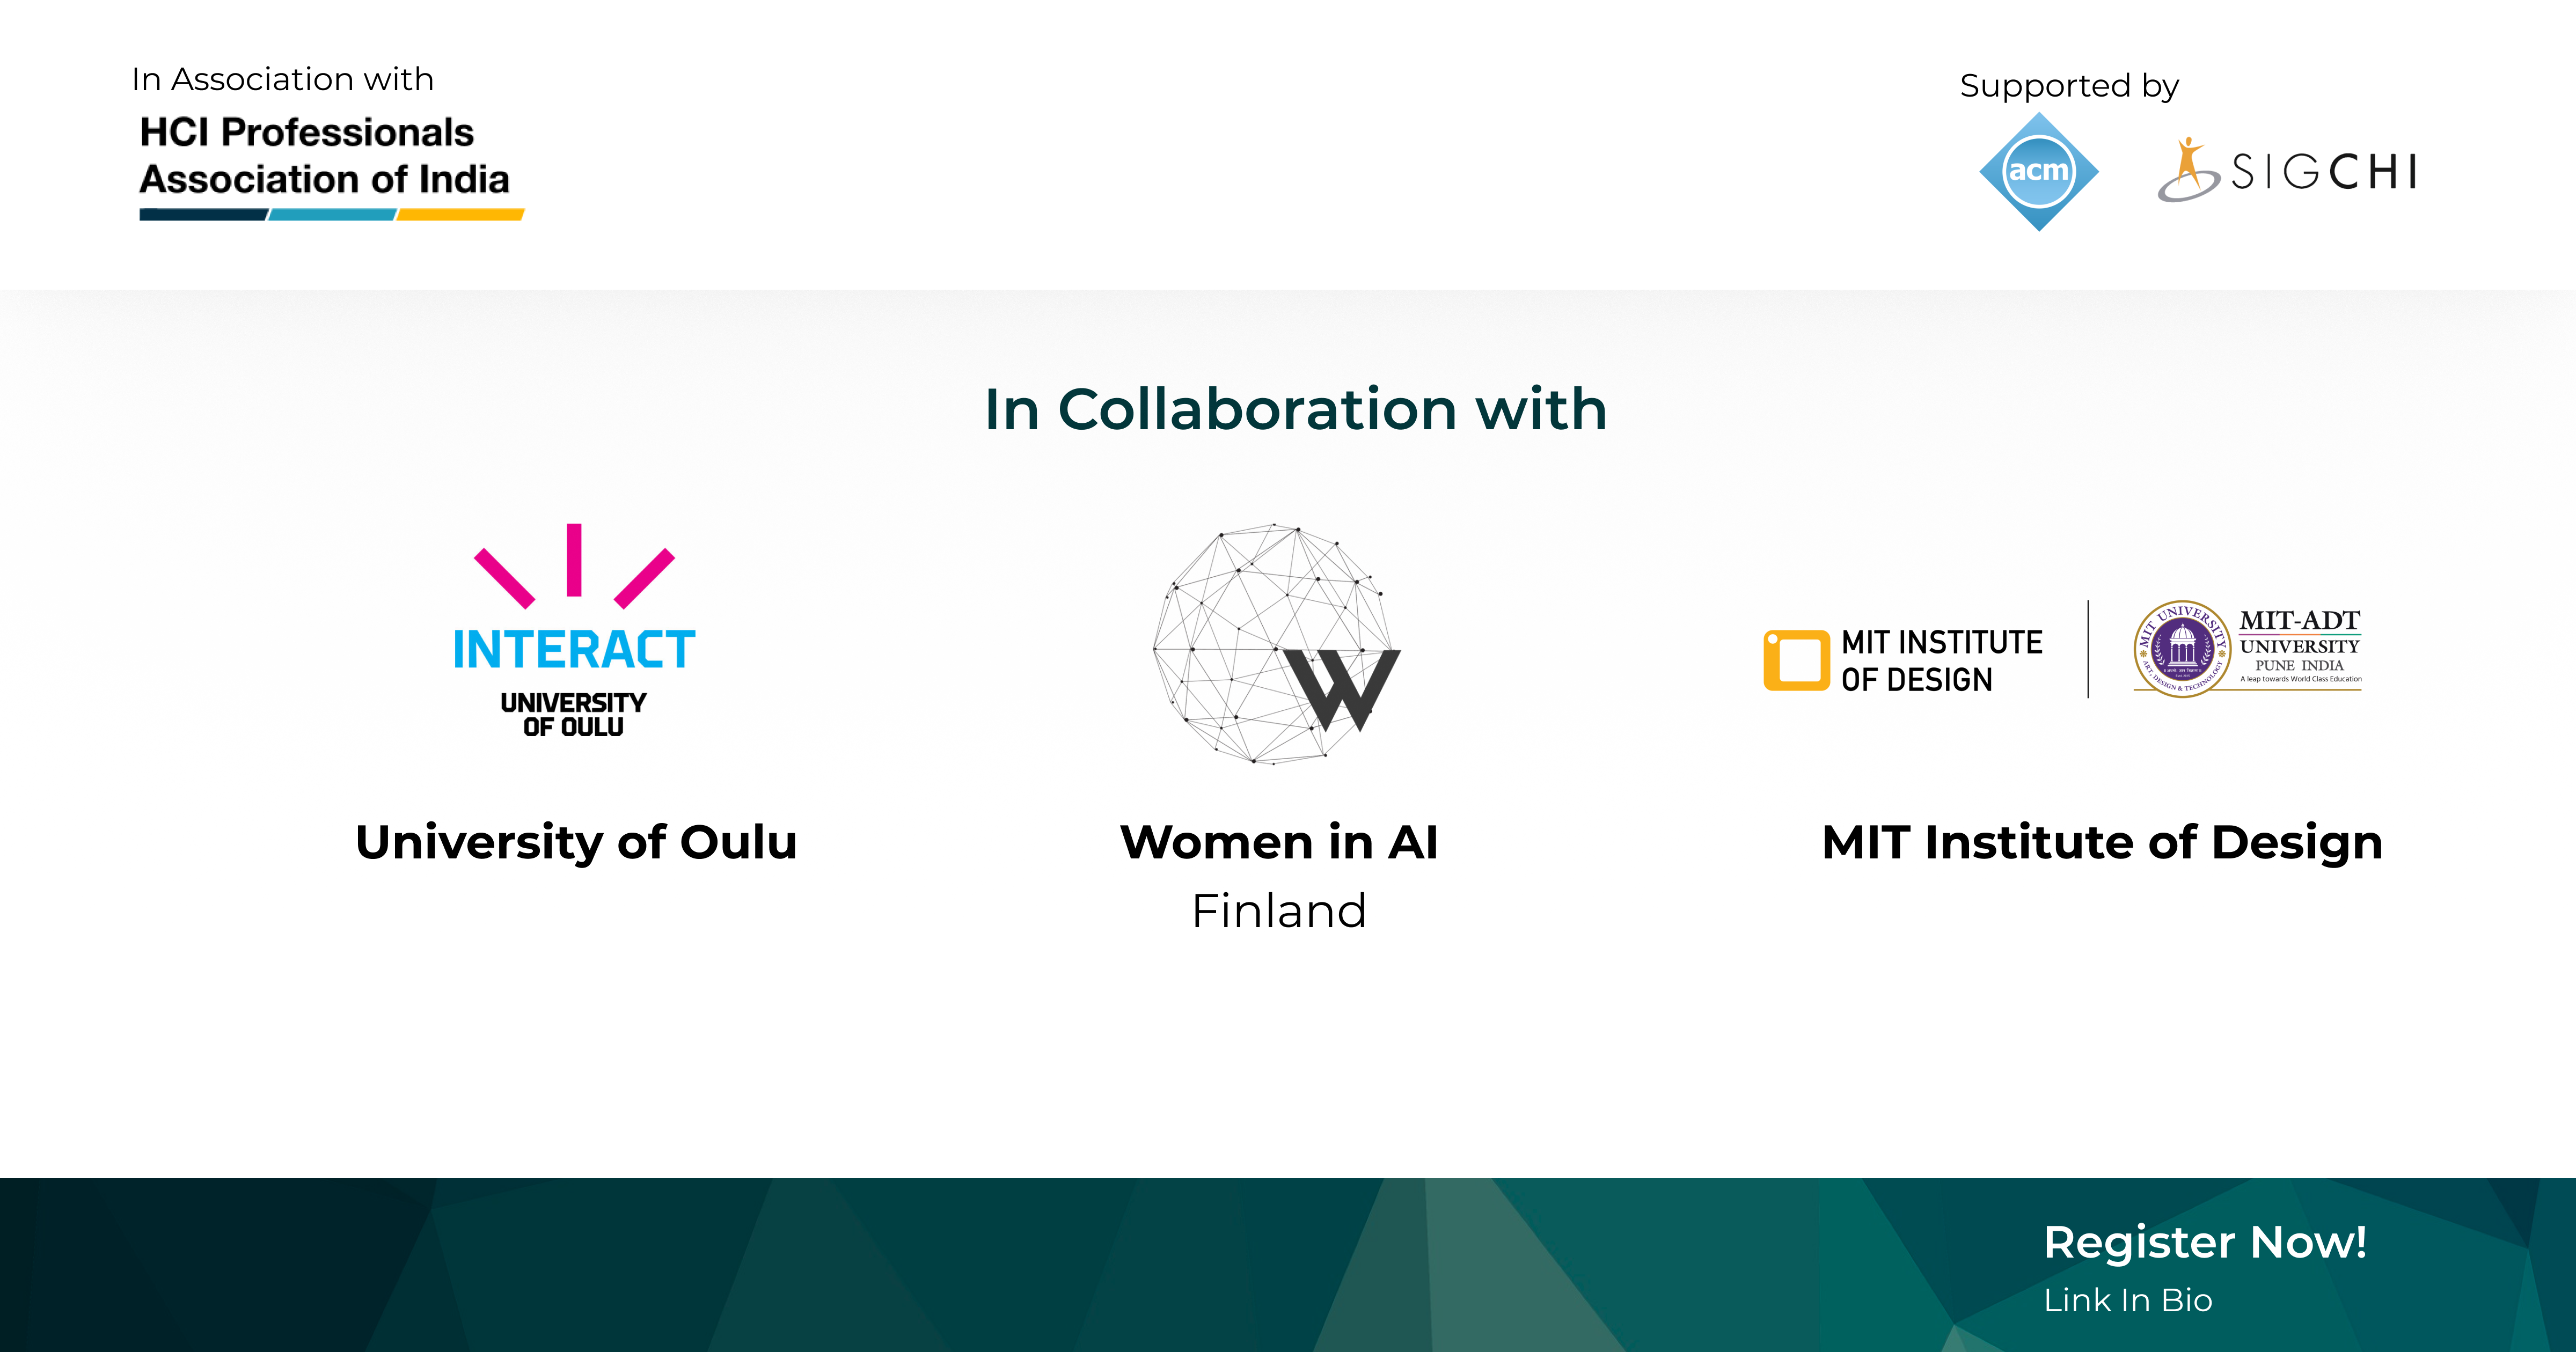 HCI4SouthAsia (HCI4SA) and India HCI 2021 Prelude will host the second Seminar on AI4NB in collaboration with the University of Oulu, Women in AI in Finland, MIT Institute of Design & UNICEF Finland